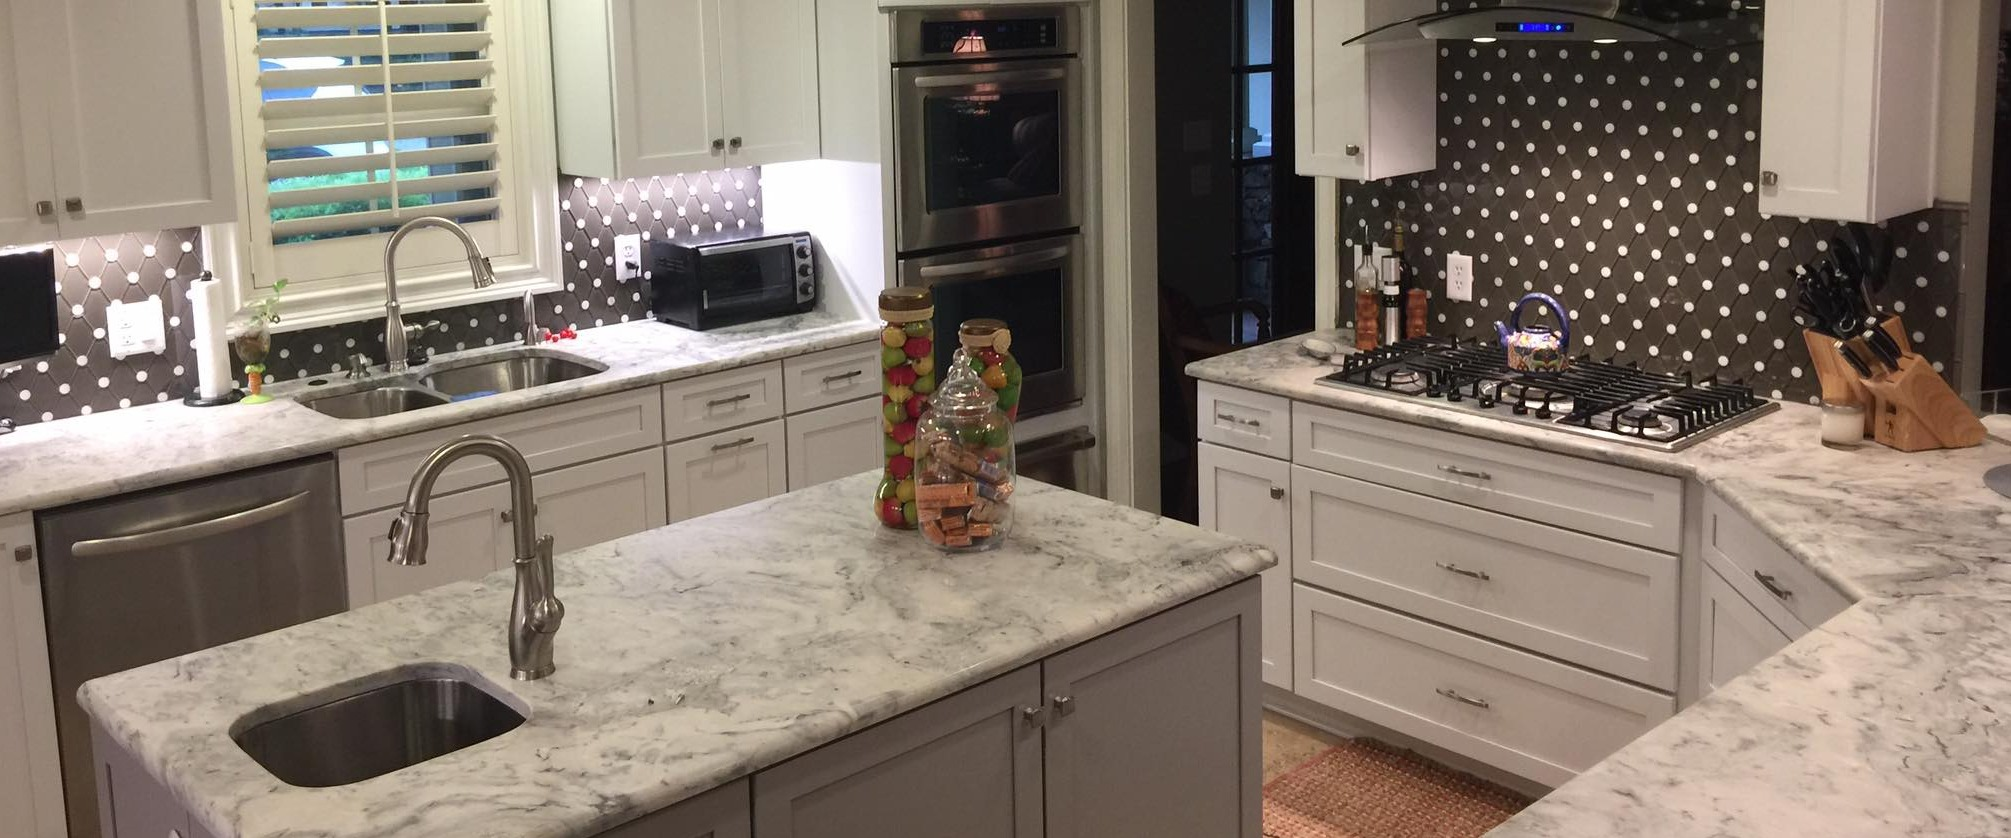 Attrayant Cabinet Store, Home Remodeling Service: Orange Beach, AL